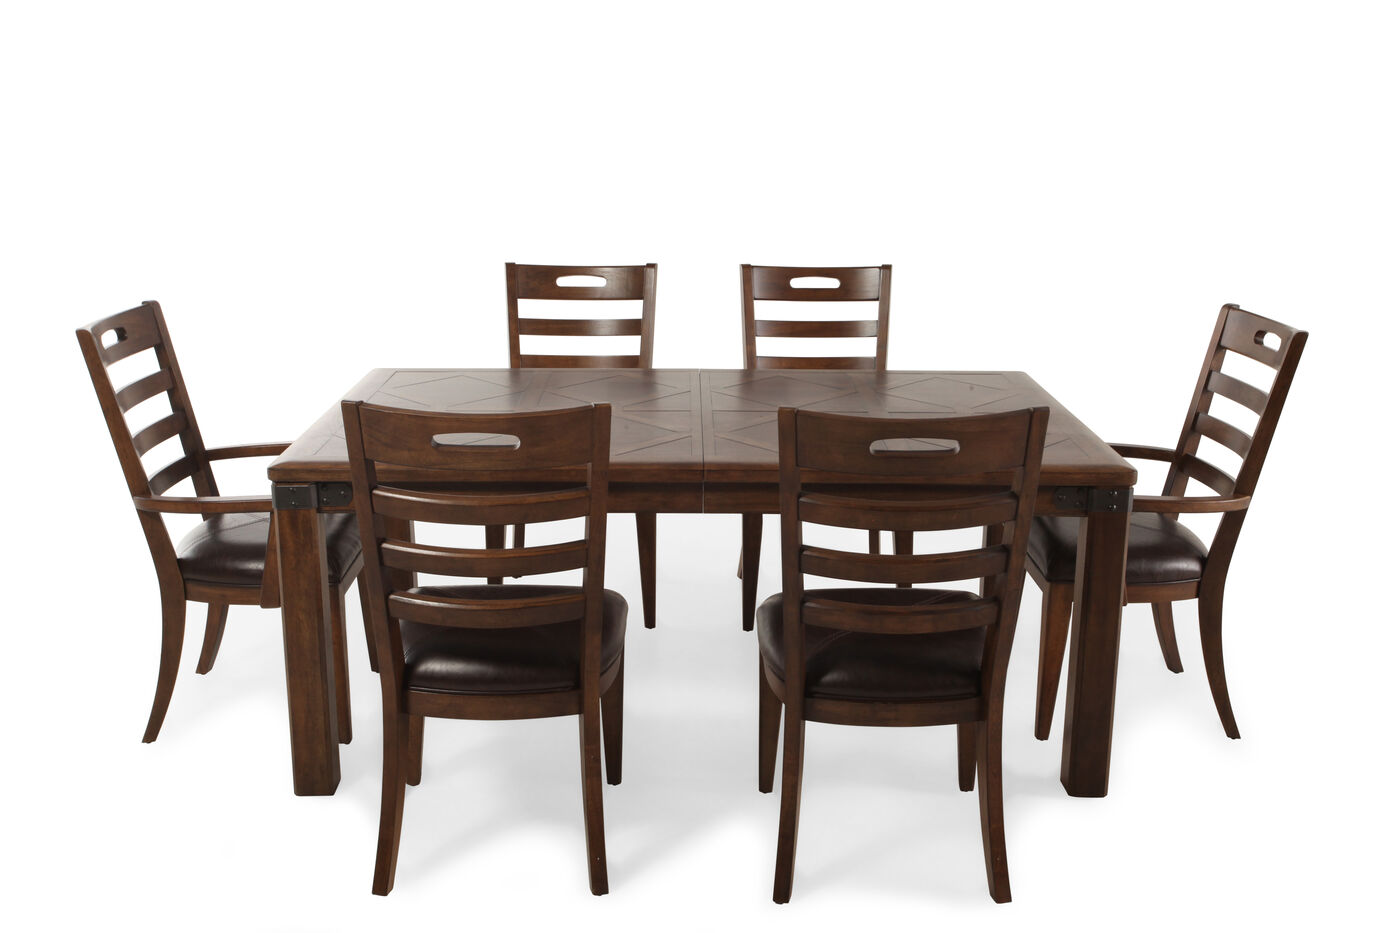 Seven piece traditional 70 39 39 dining set in medium brown for Naaptol kitchen set 70 pieces